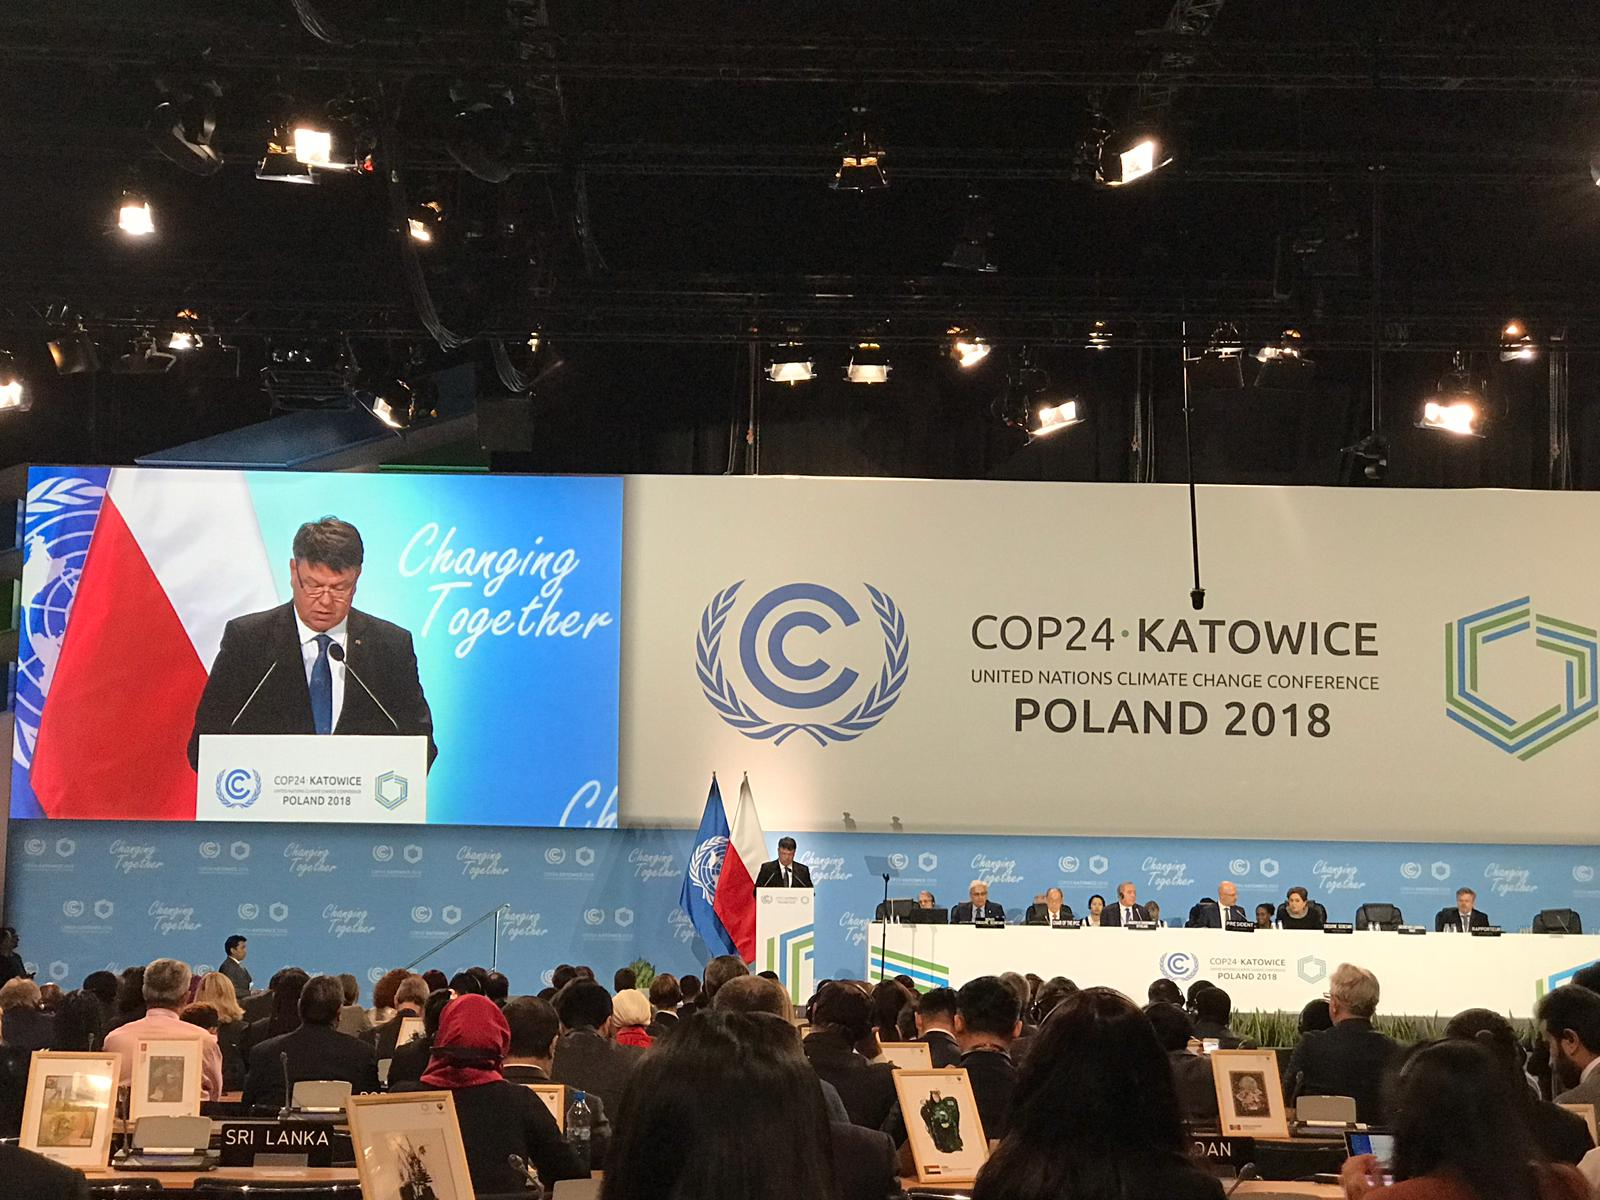 United Nations Climate Change Conference (COP 24, CMP 14 and CMA 1